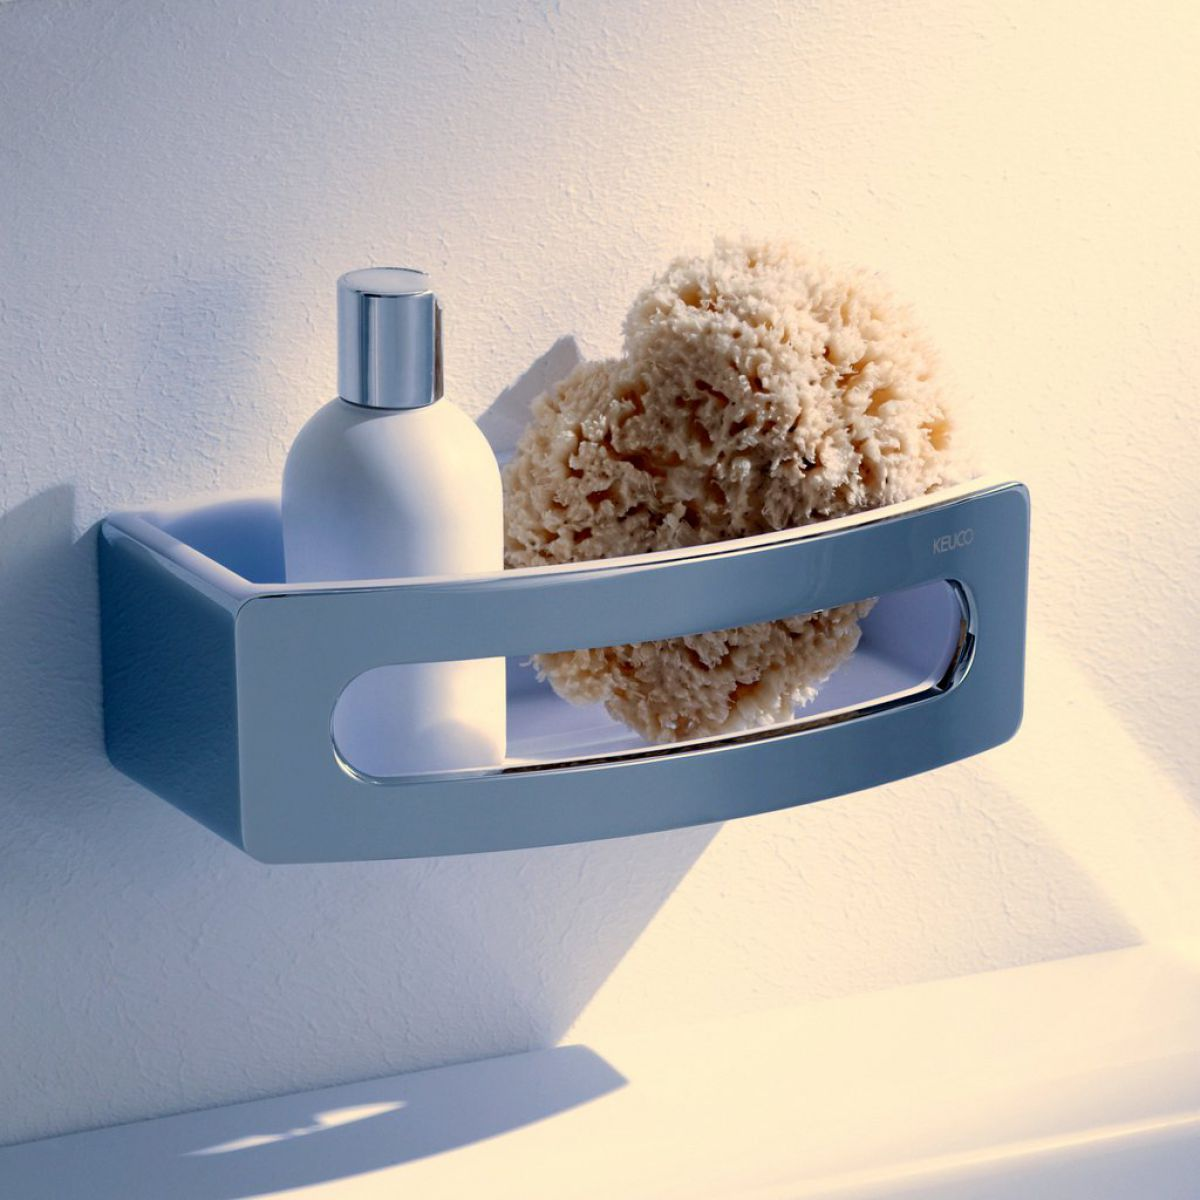 Keuco Elegance Shower Basket : UK Bathrooms